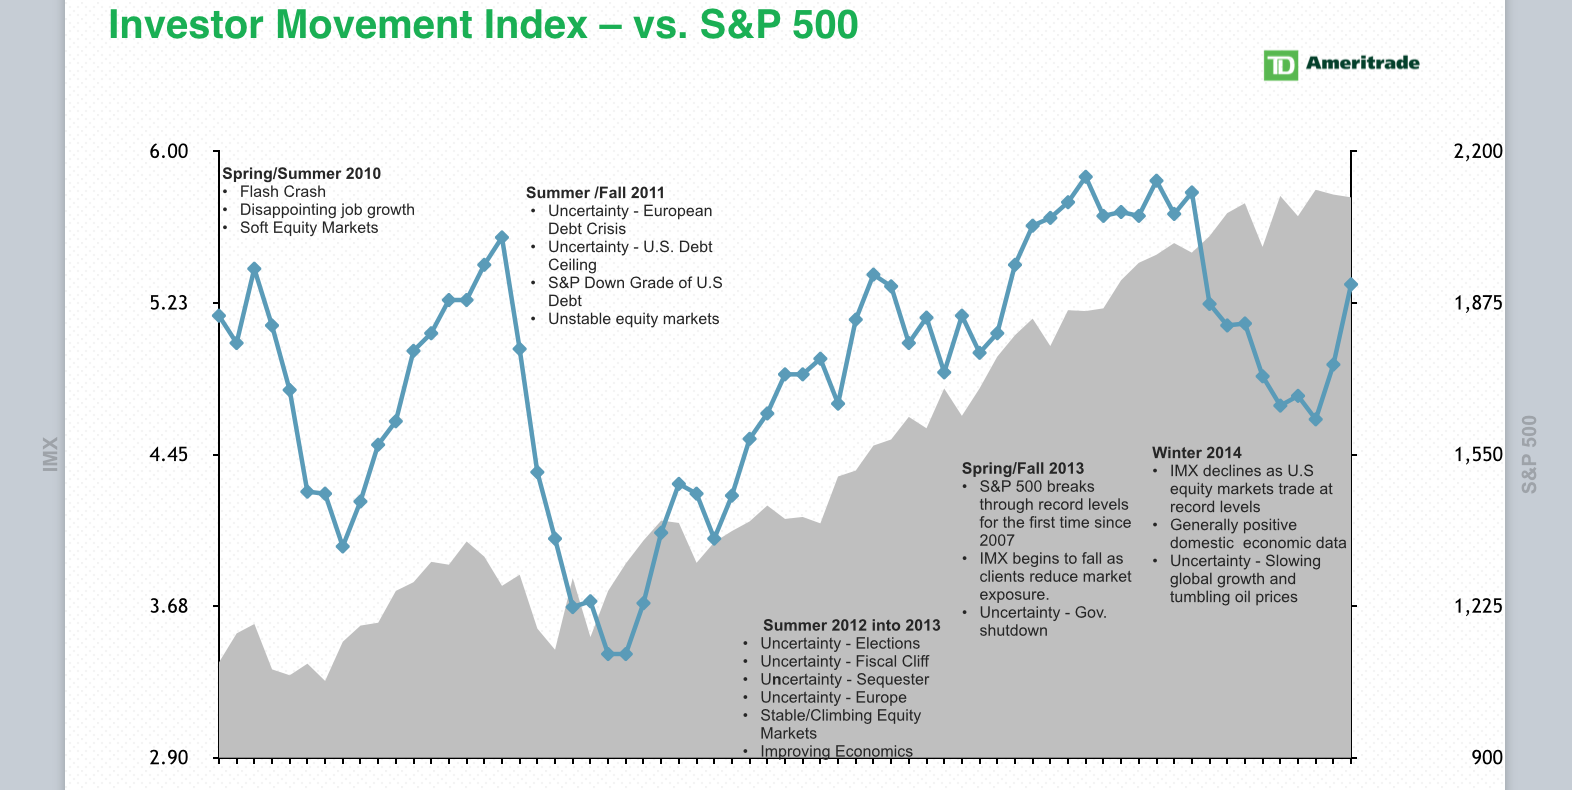 Historical Performance of the IMX and the S&P 500 Index, Source: TD Ameritrade